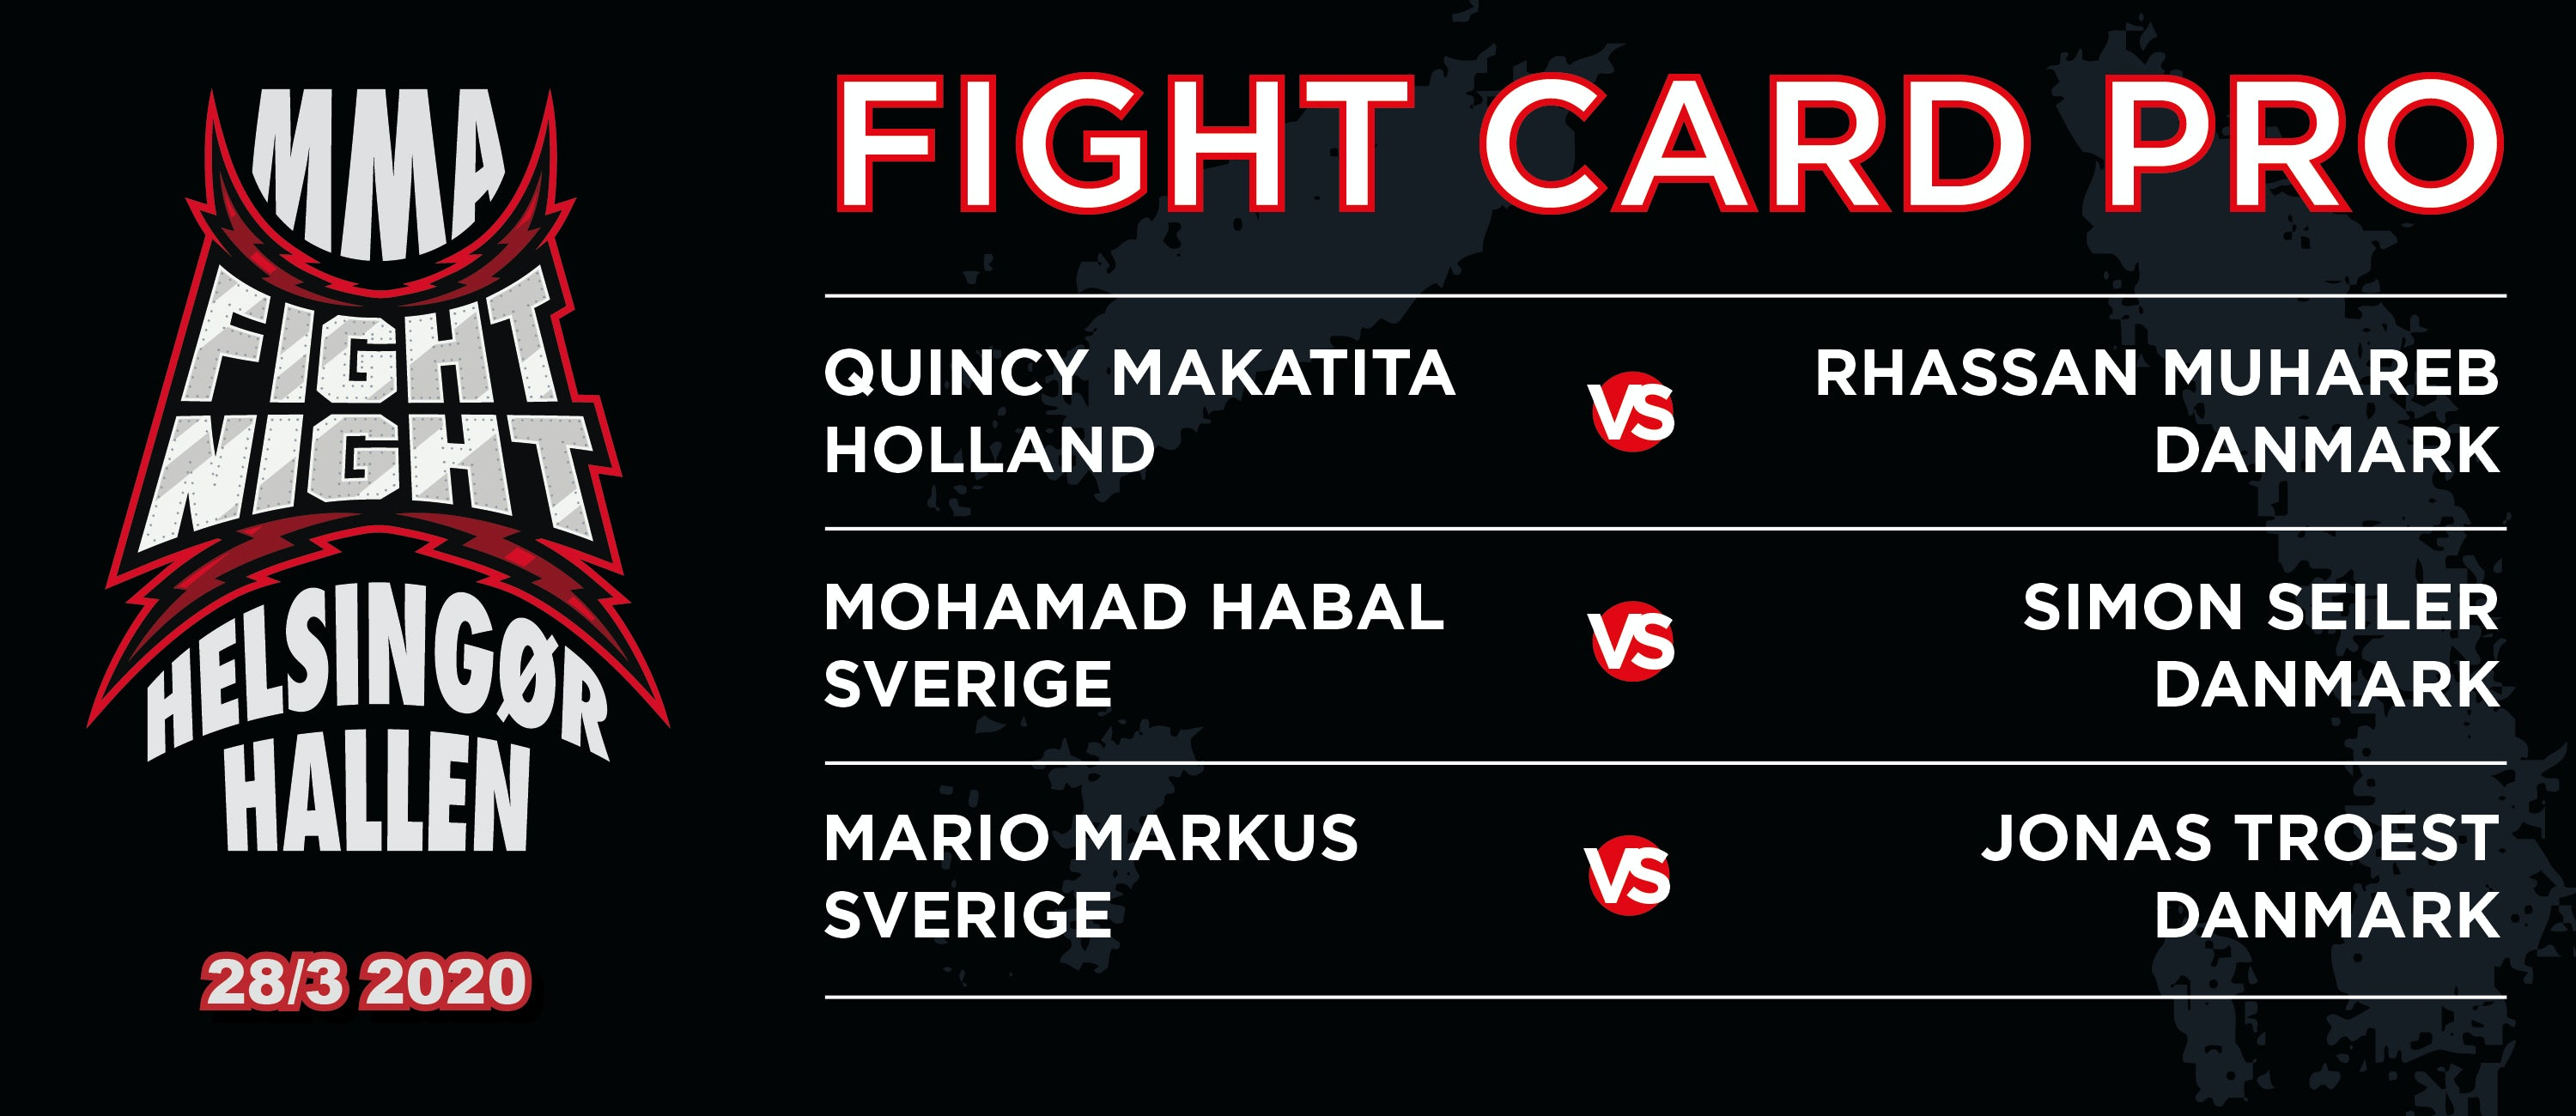 Fight Card Pro